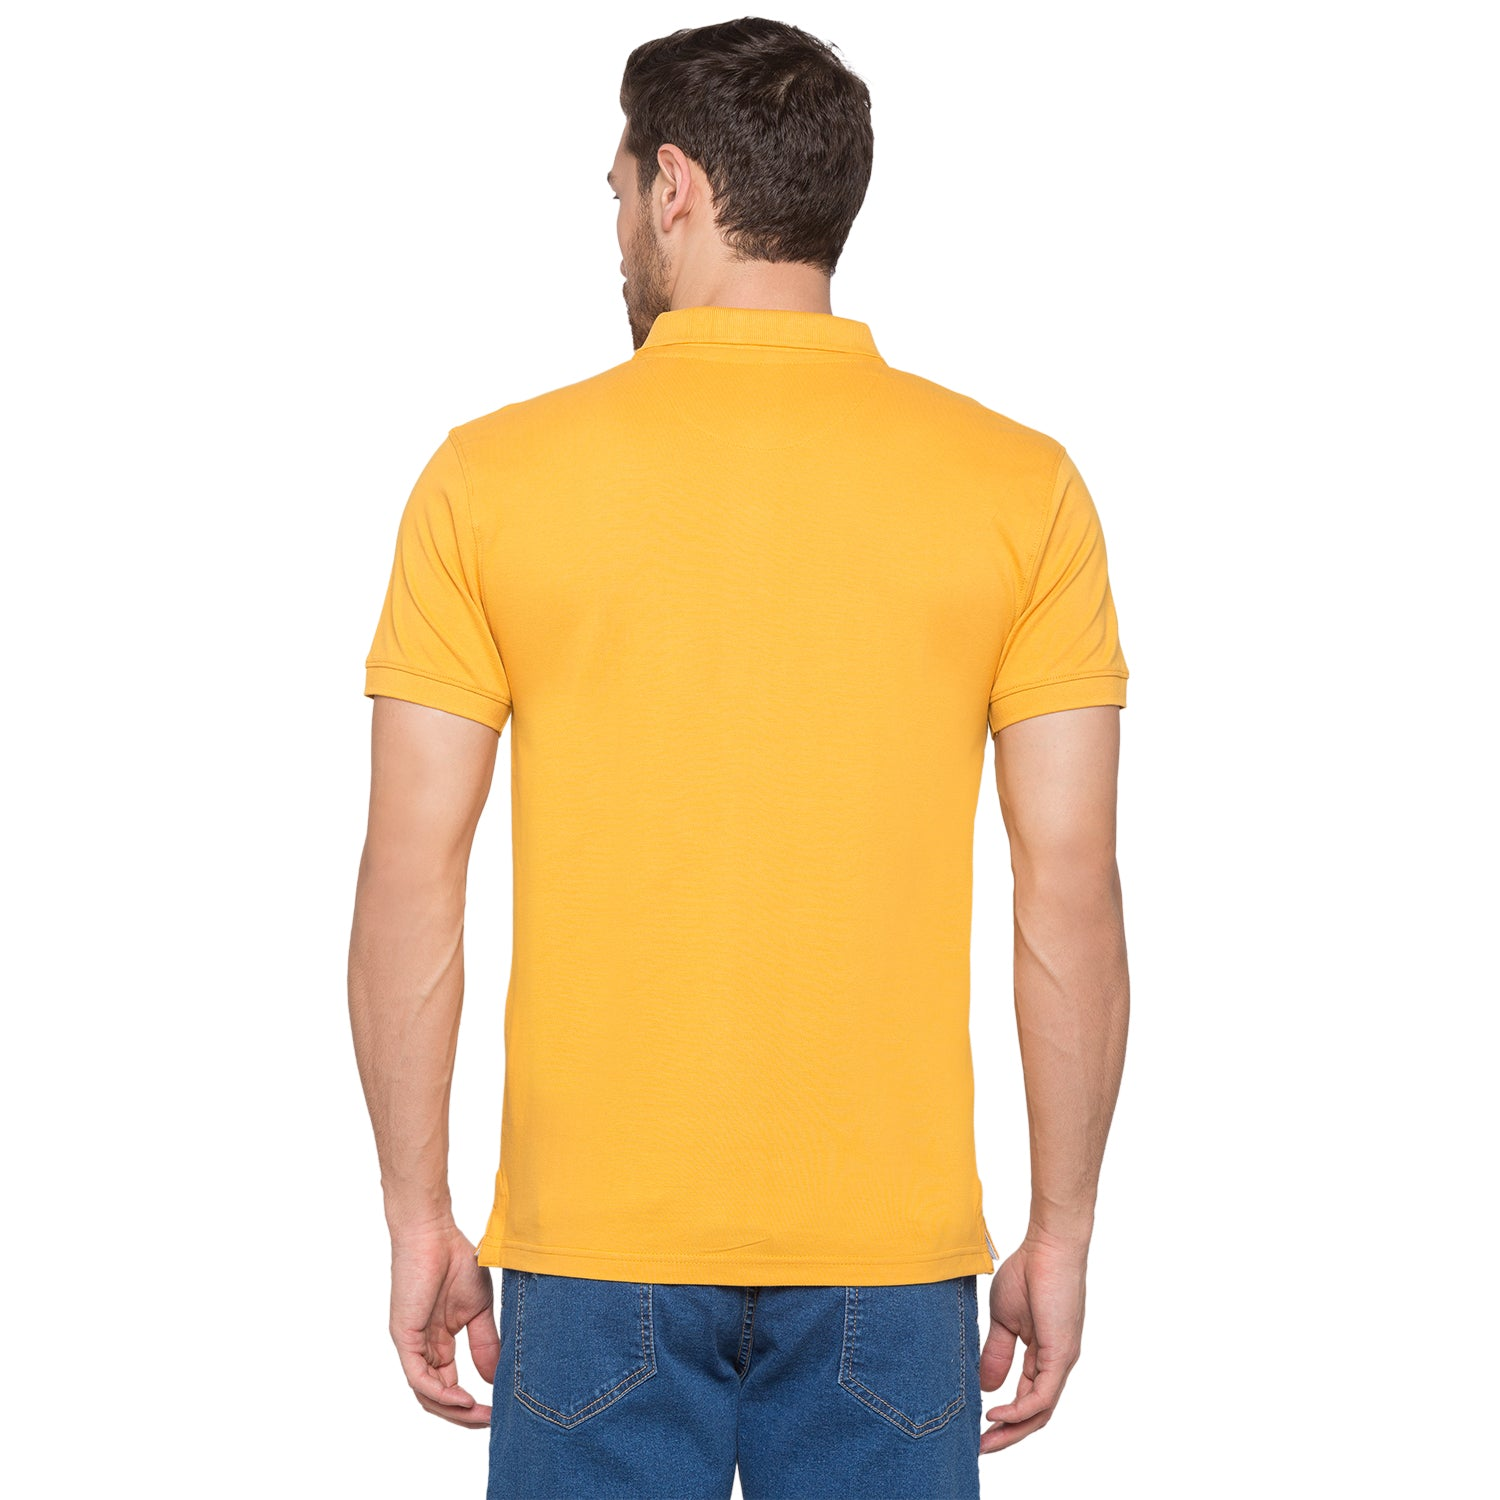 Globus Mustard Solid Polo T-Shirt3